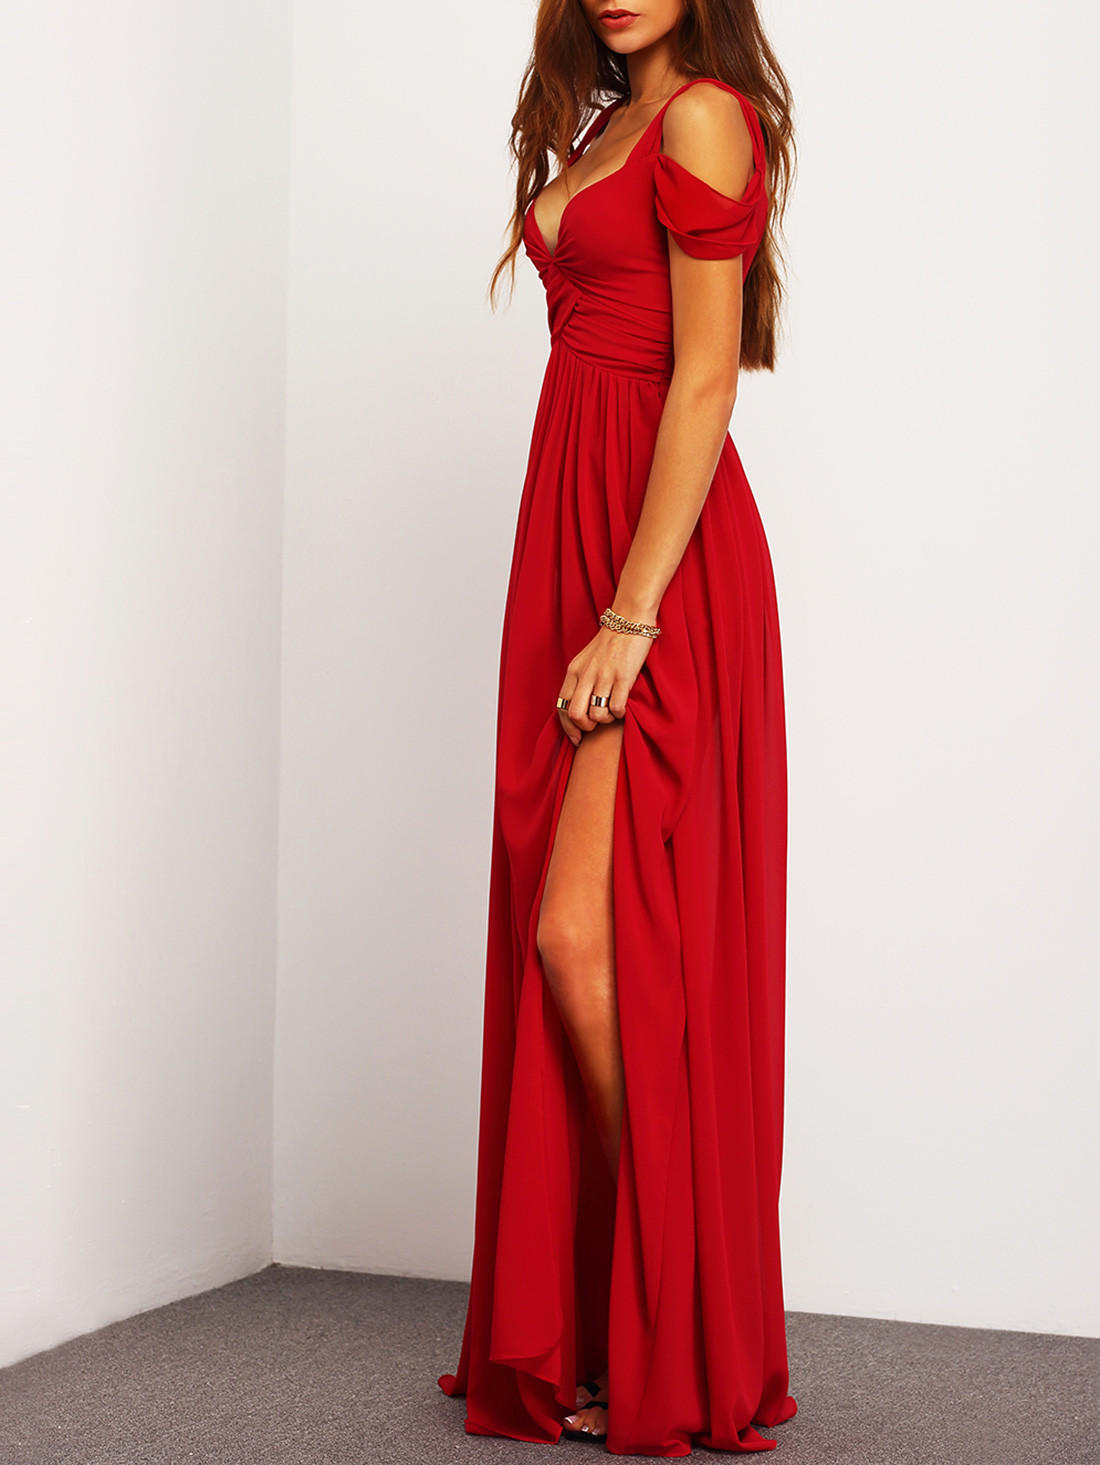 0fd60e48b48a ♡ Red Off The Shoulder Maxi Dress ♡ from Crystalline